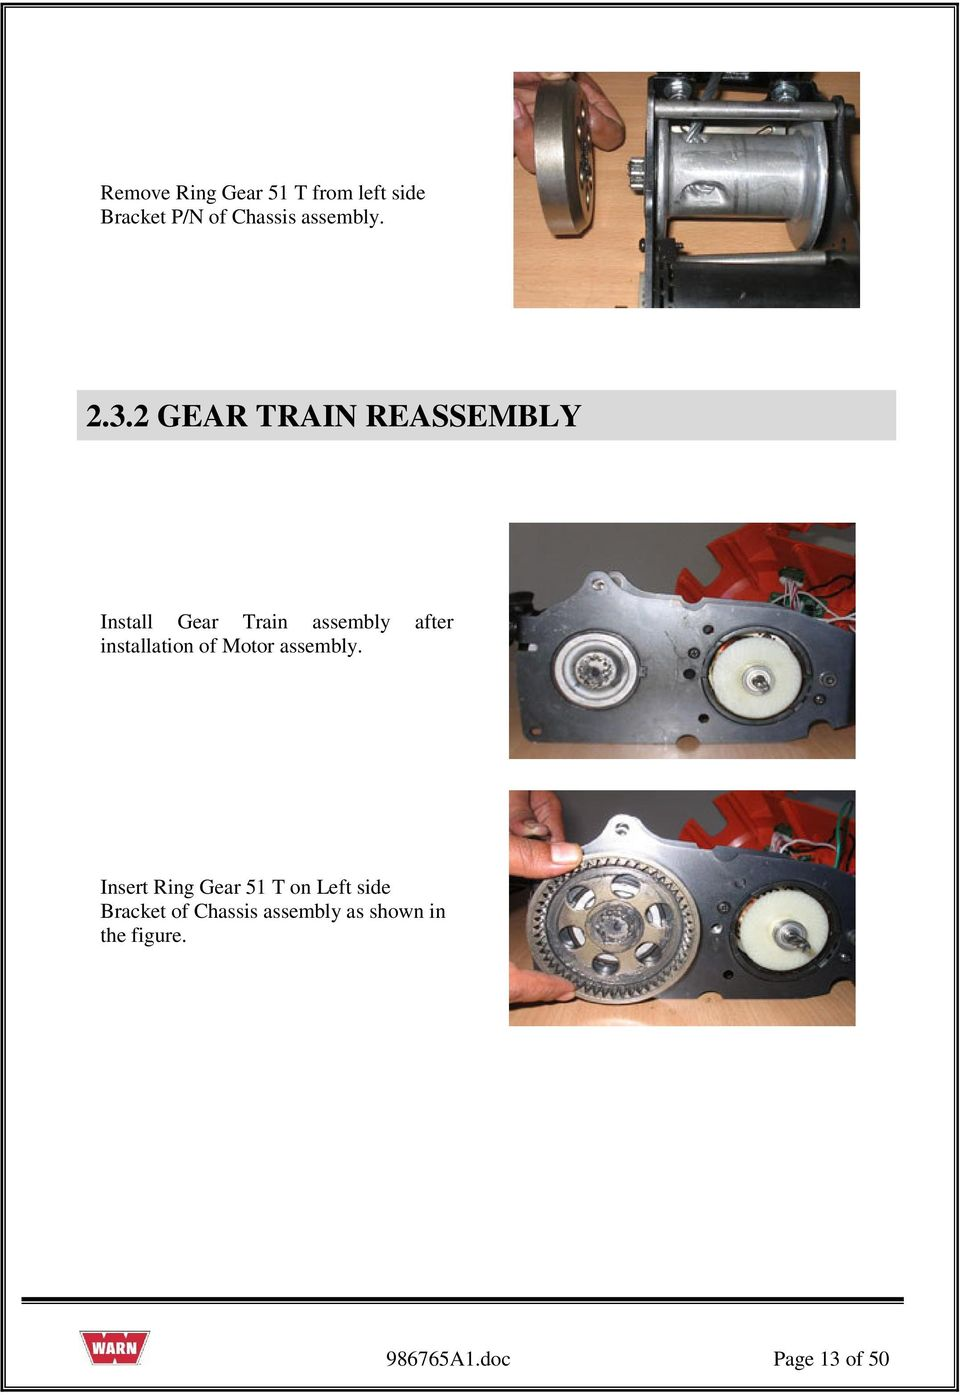 SERVICE GUIDE For WARN PULLZALL 120v AC &100v AC P/N & - PDF on